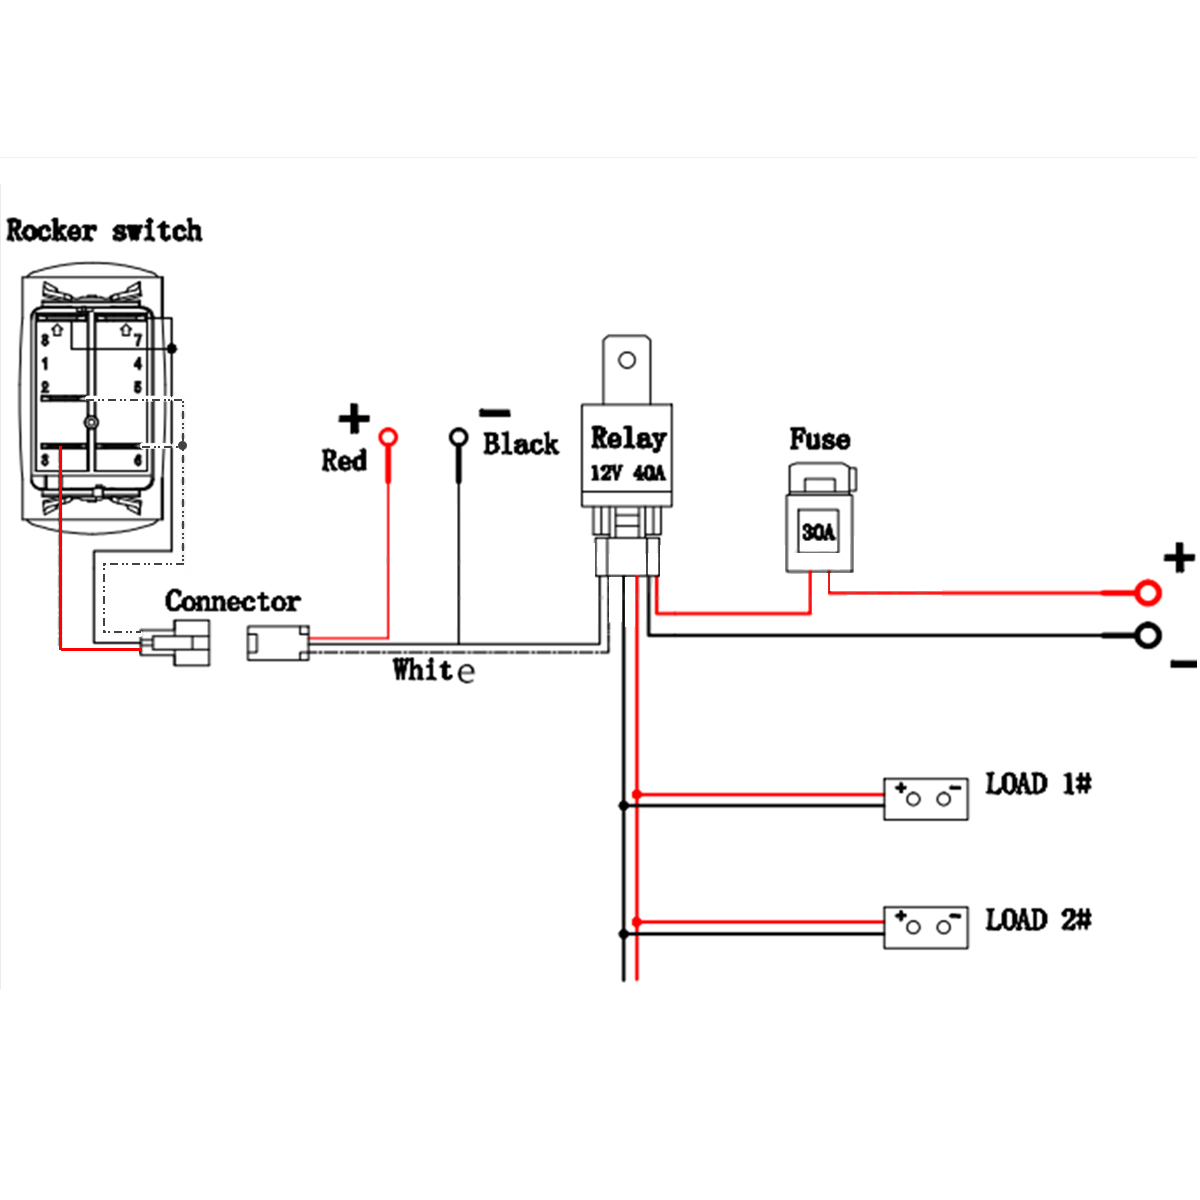 hight resolution of on a 12v lighted switch wiring diagram wiring diagram blogs 12 volt 3 wire switch diagram